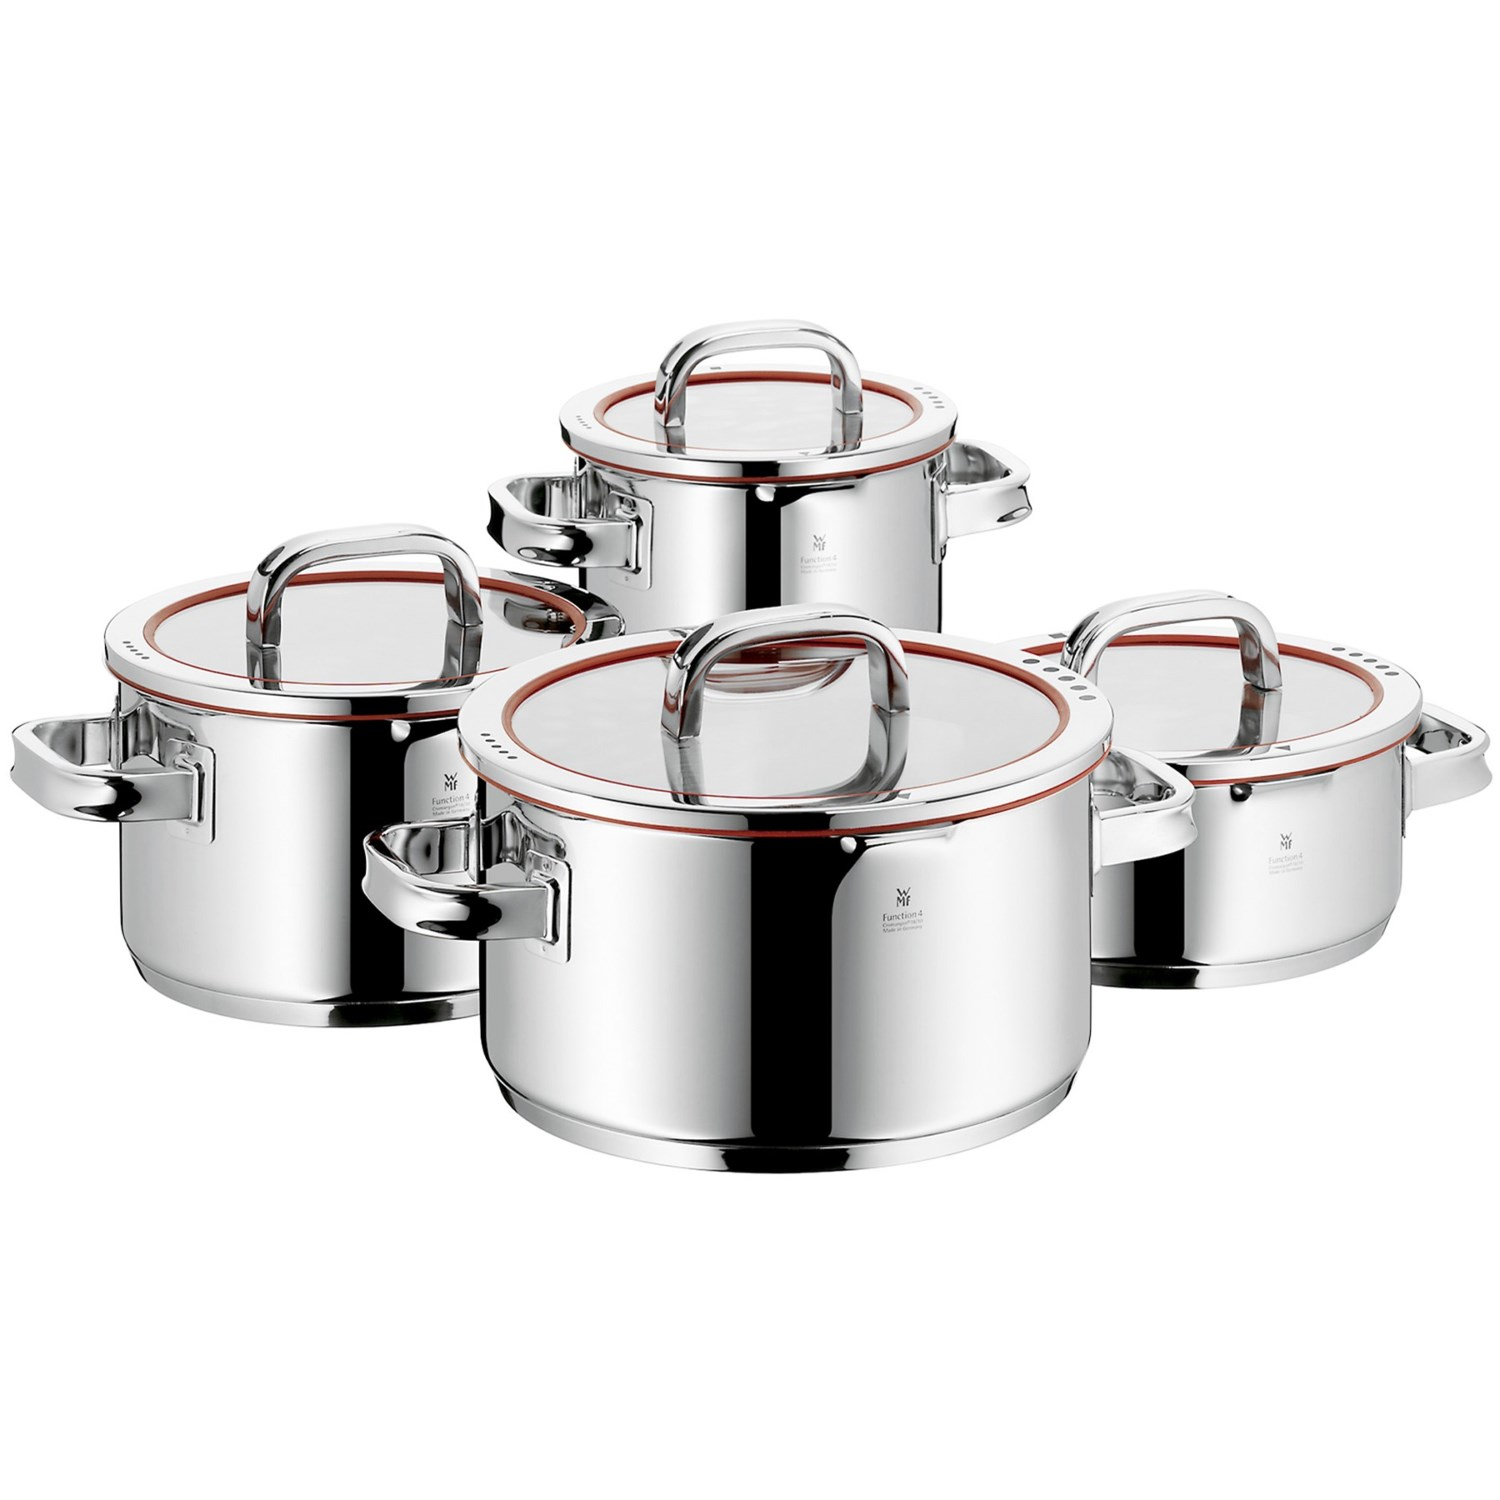 wmf function 4 18 10 stainless steel cookware set 8 piece 5684k save 35. Black Bedroom Furniture Sets. Home Design Ideas